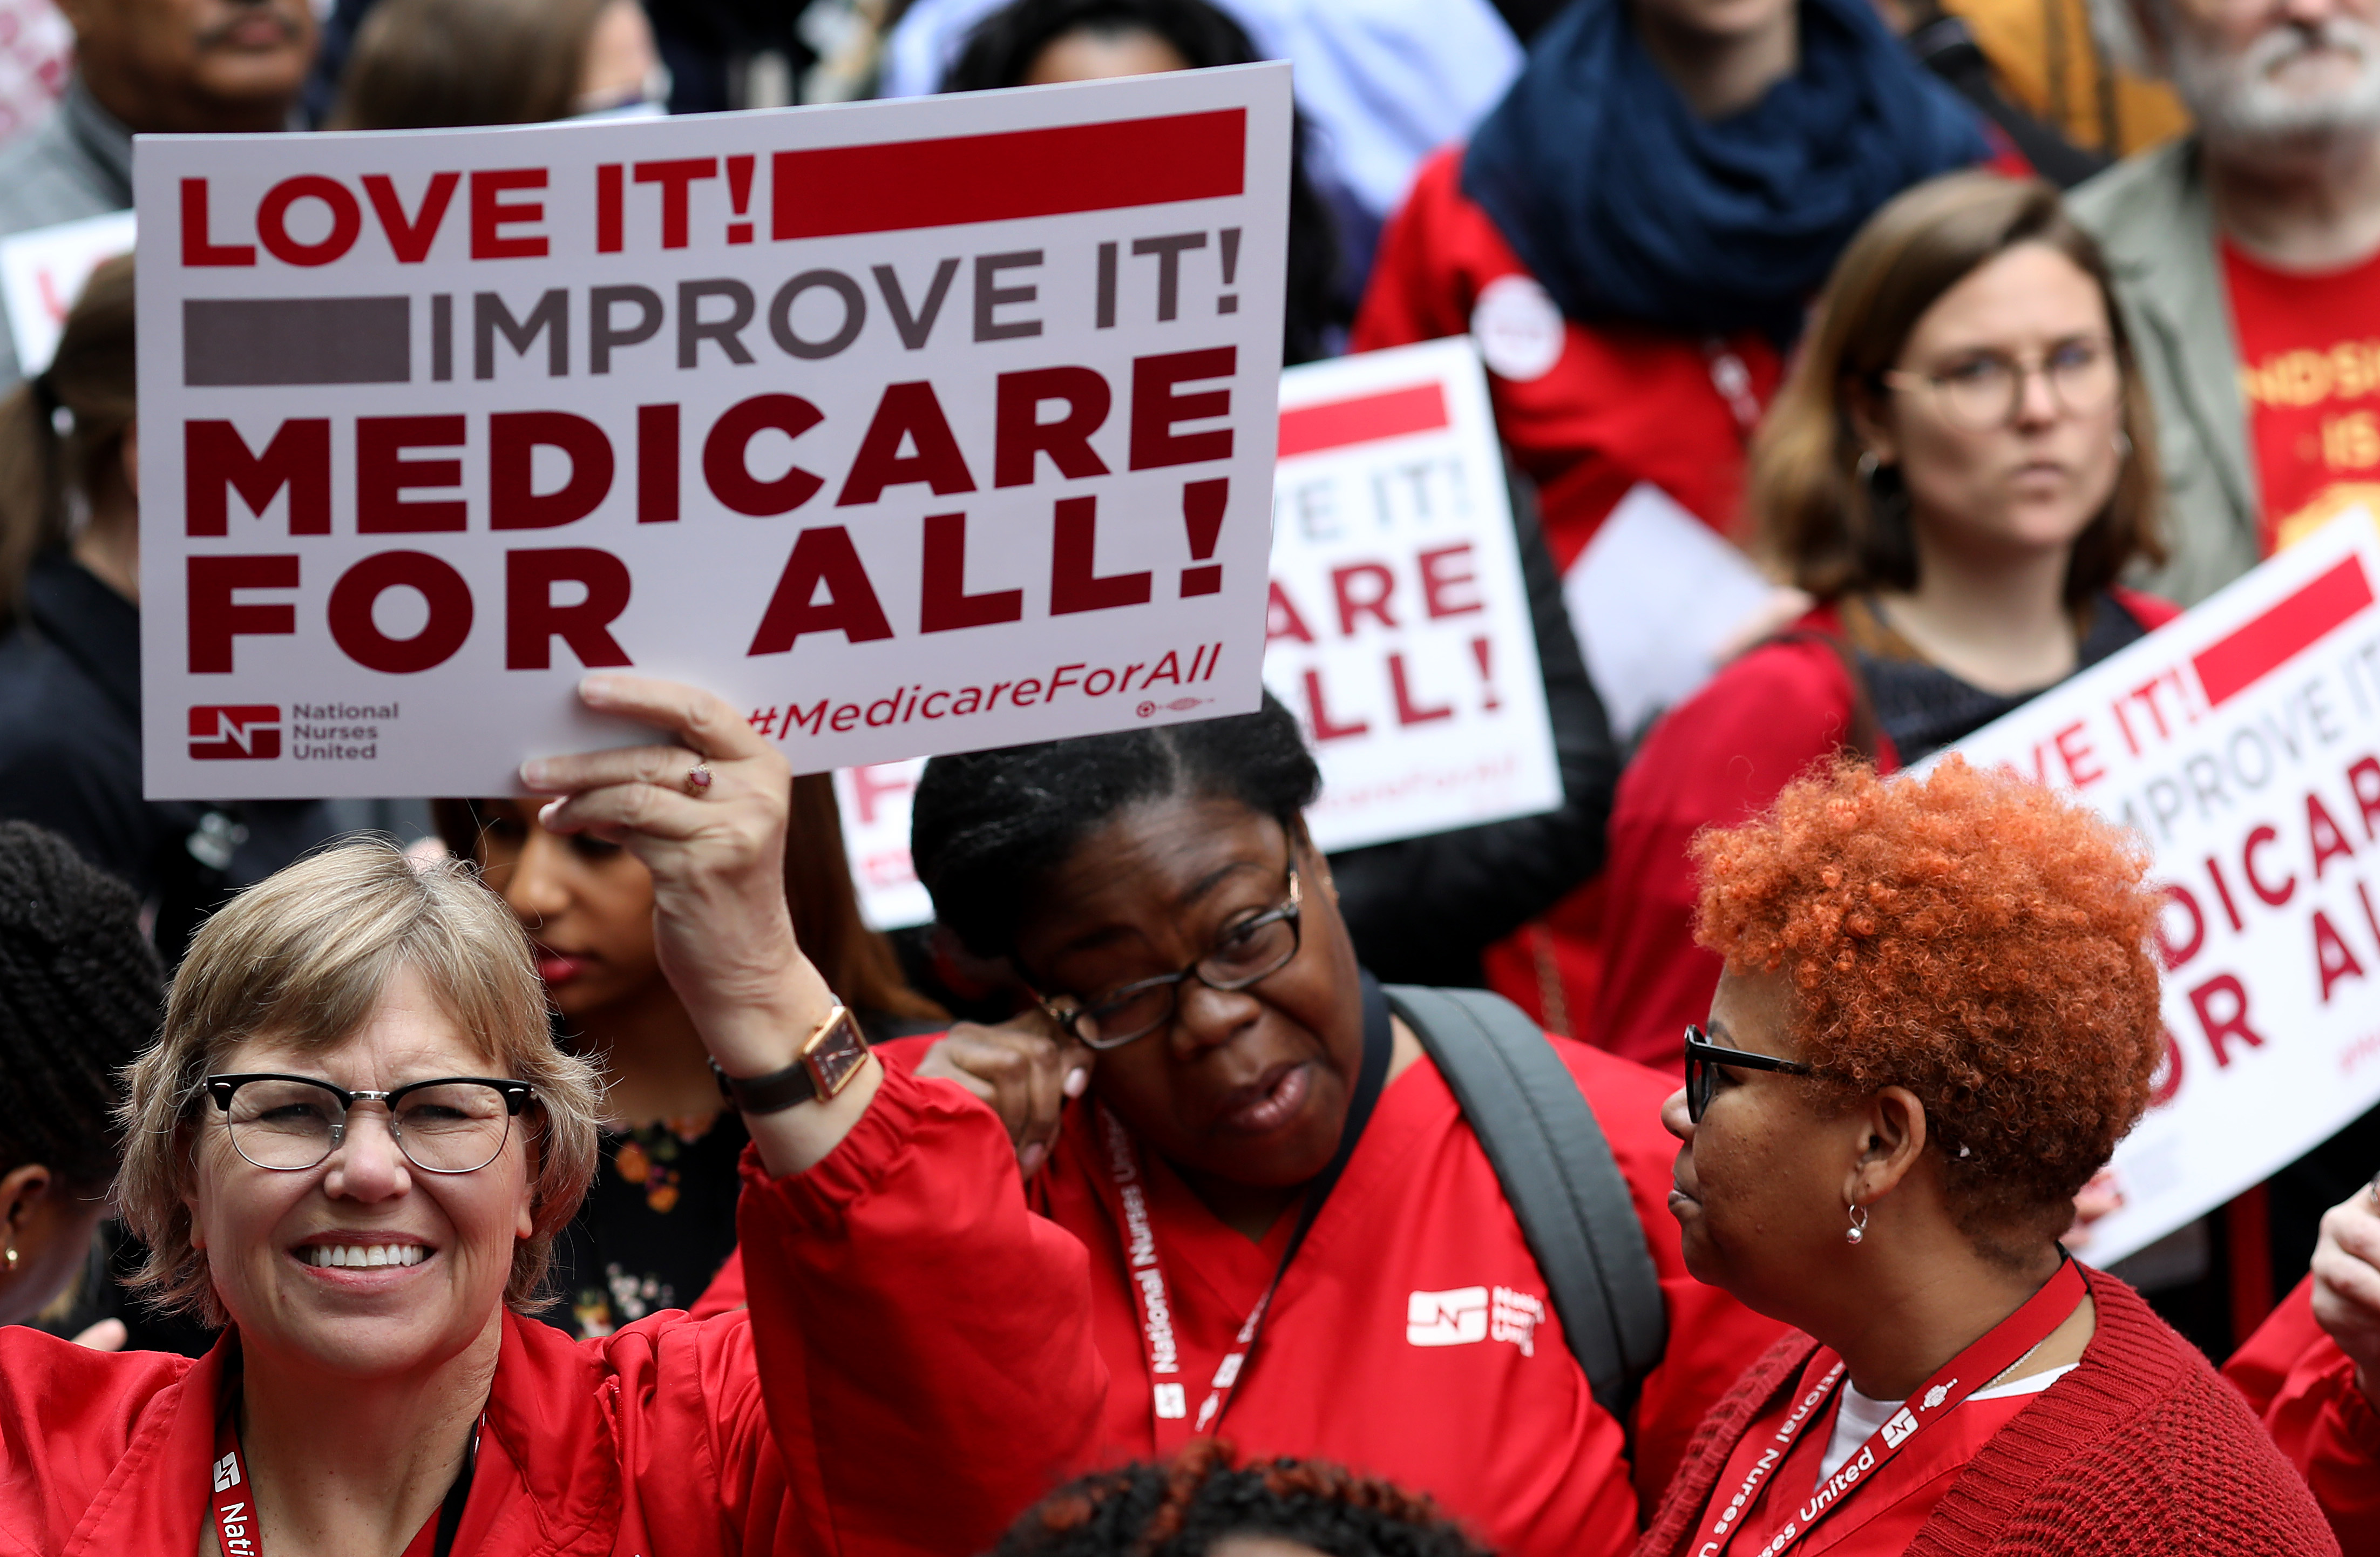 """Protesters supporting """"Medicare for All"""" hold a rally outside PhRMA headquarters April 29, 2019 in Washington, DC. (Photo by Win McNamee/Getty Images)"""